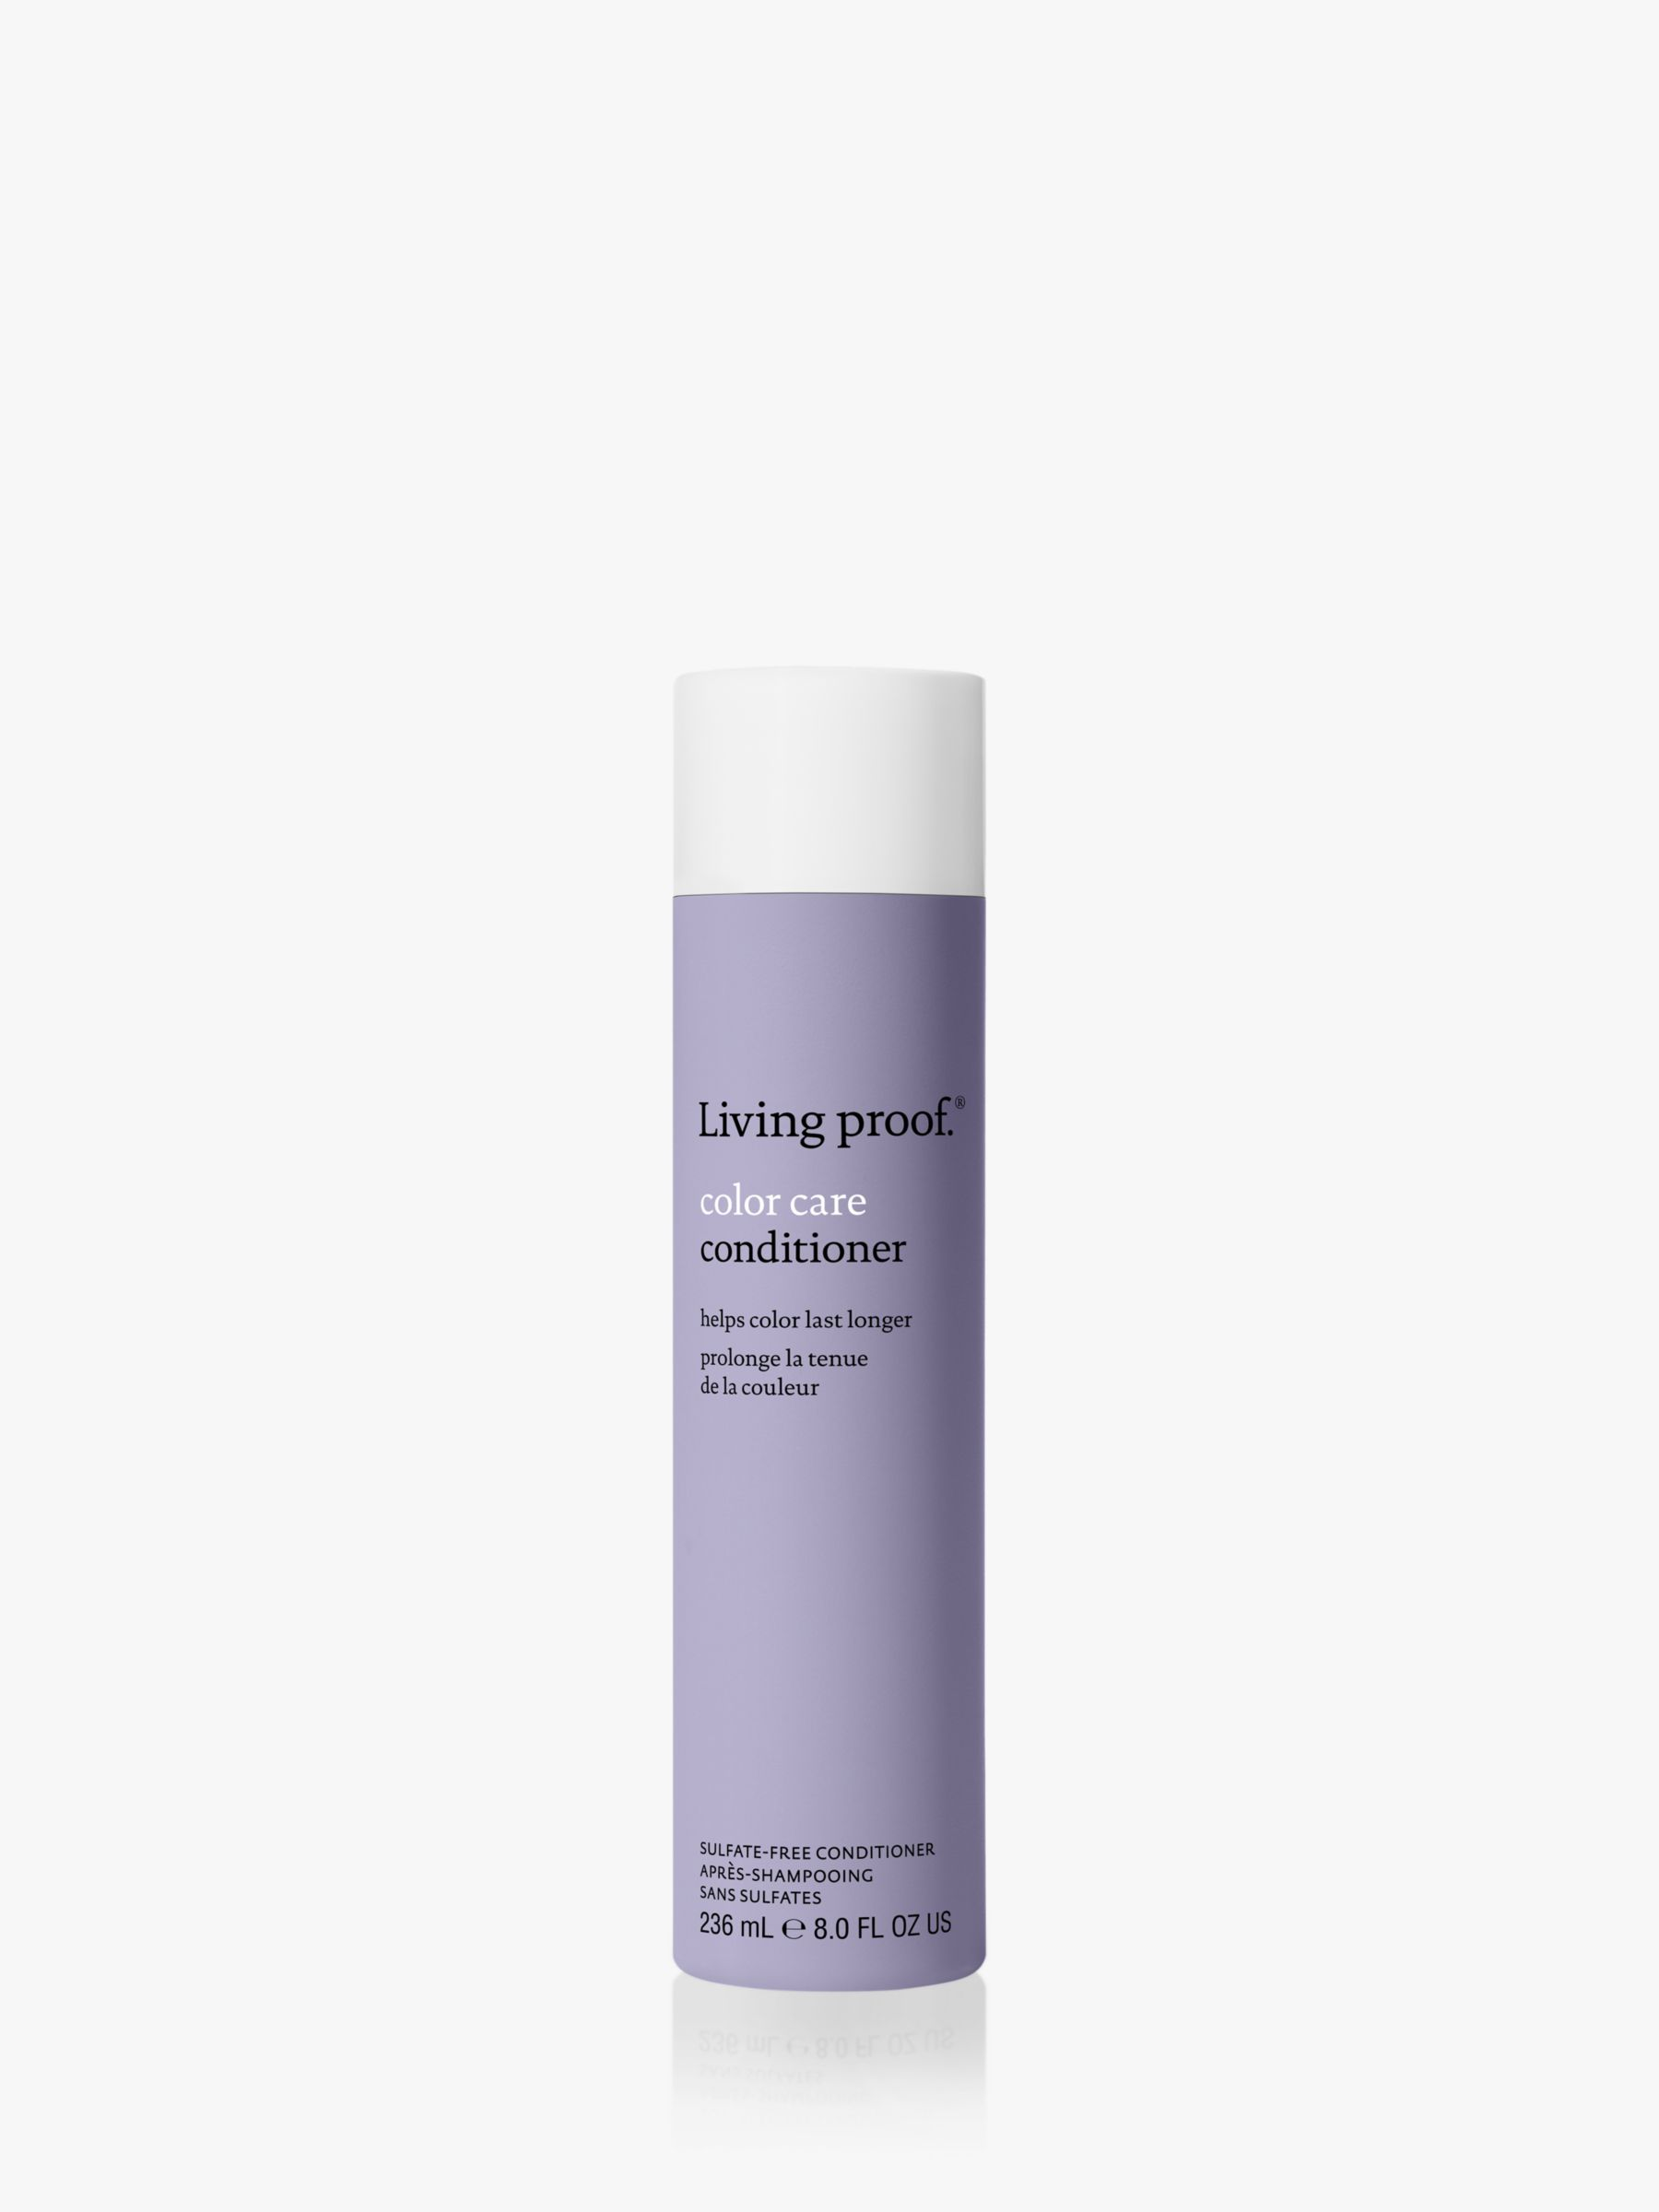 Living Proof Living Proof Color Care Conditioner, 236ml